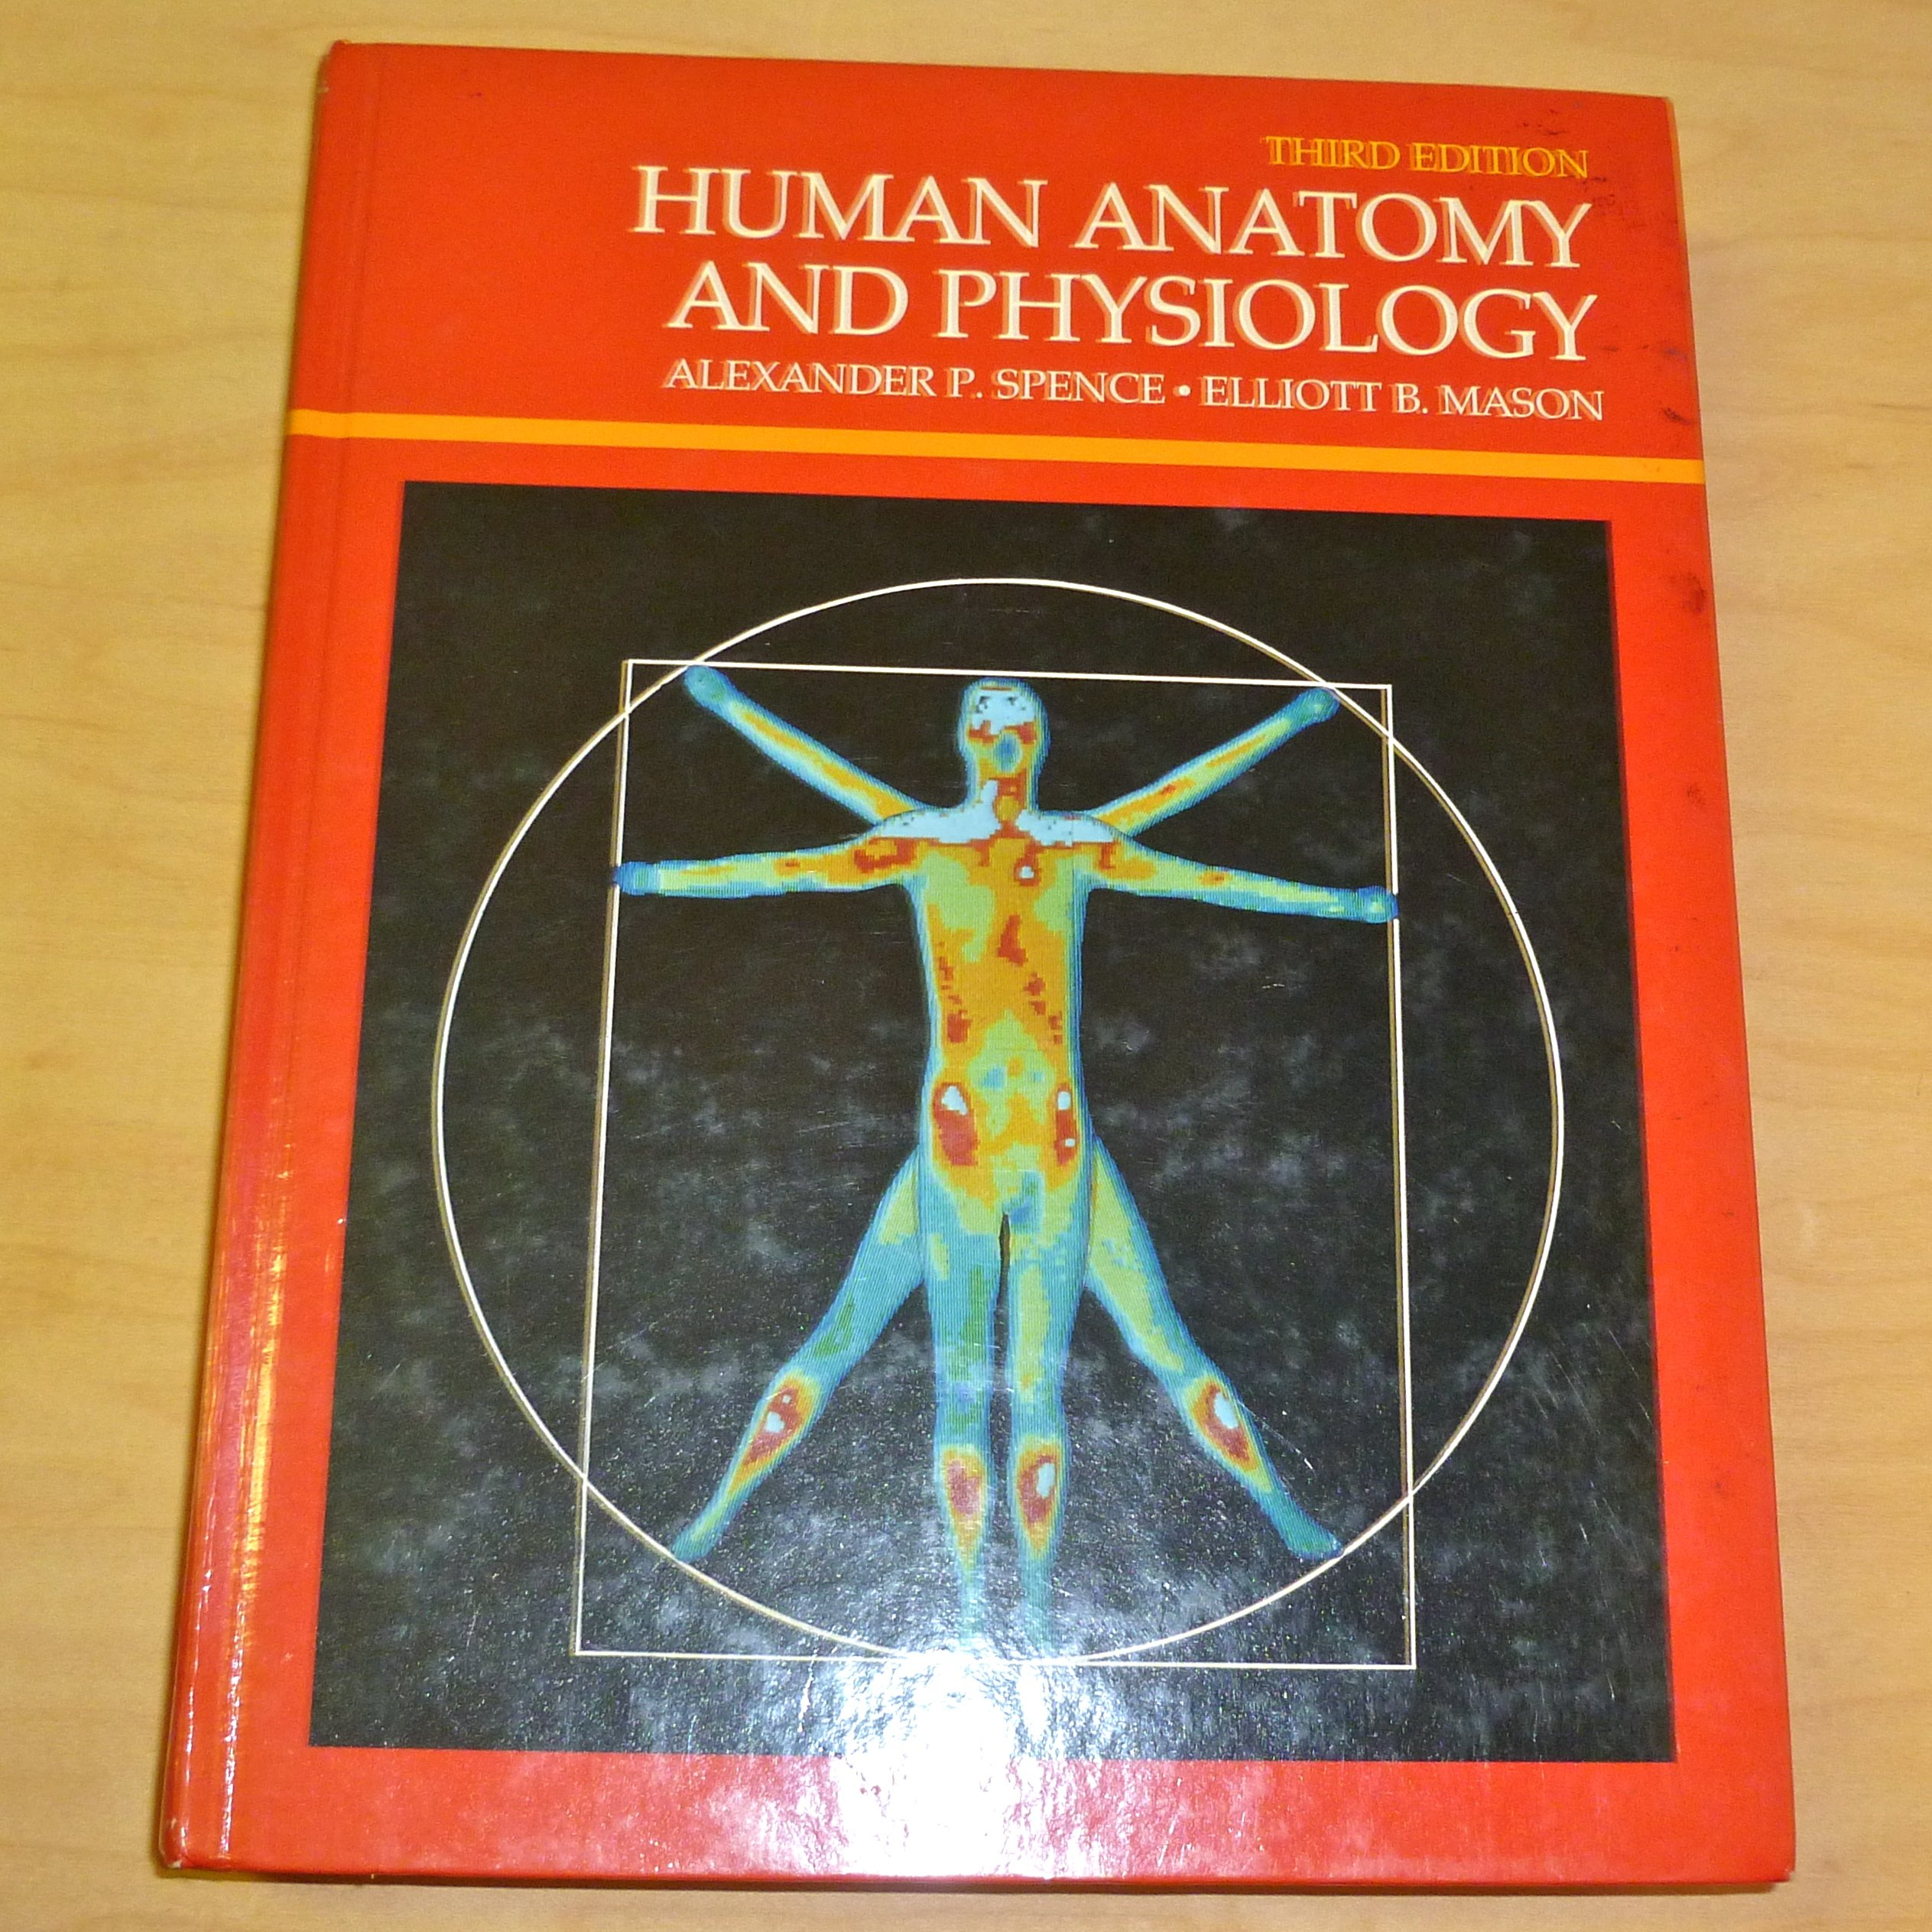 Human Anatomy and Physiology: Amazon.co.uk: Alexander P. Spence ...